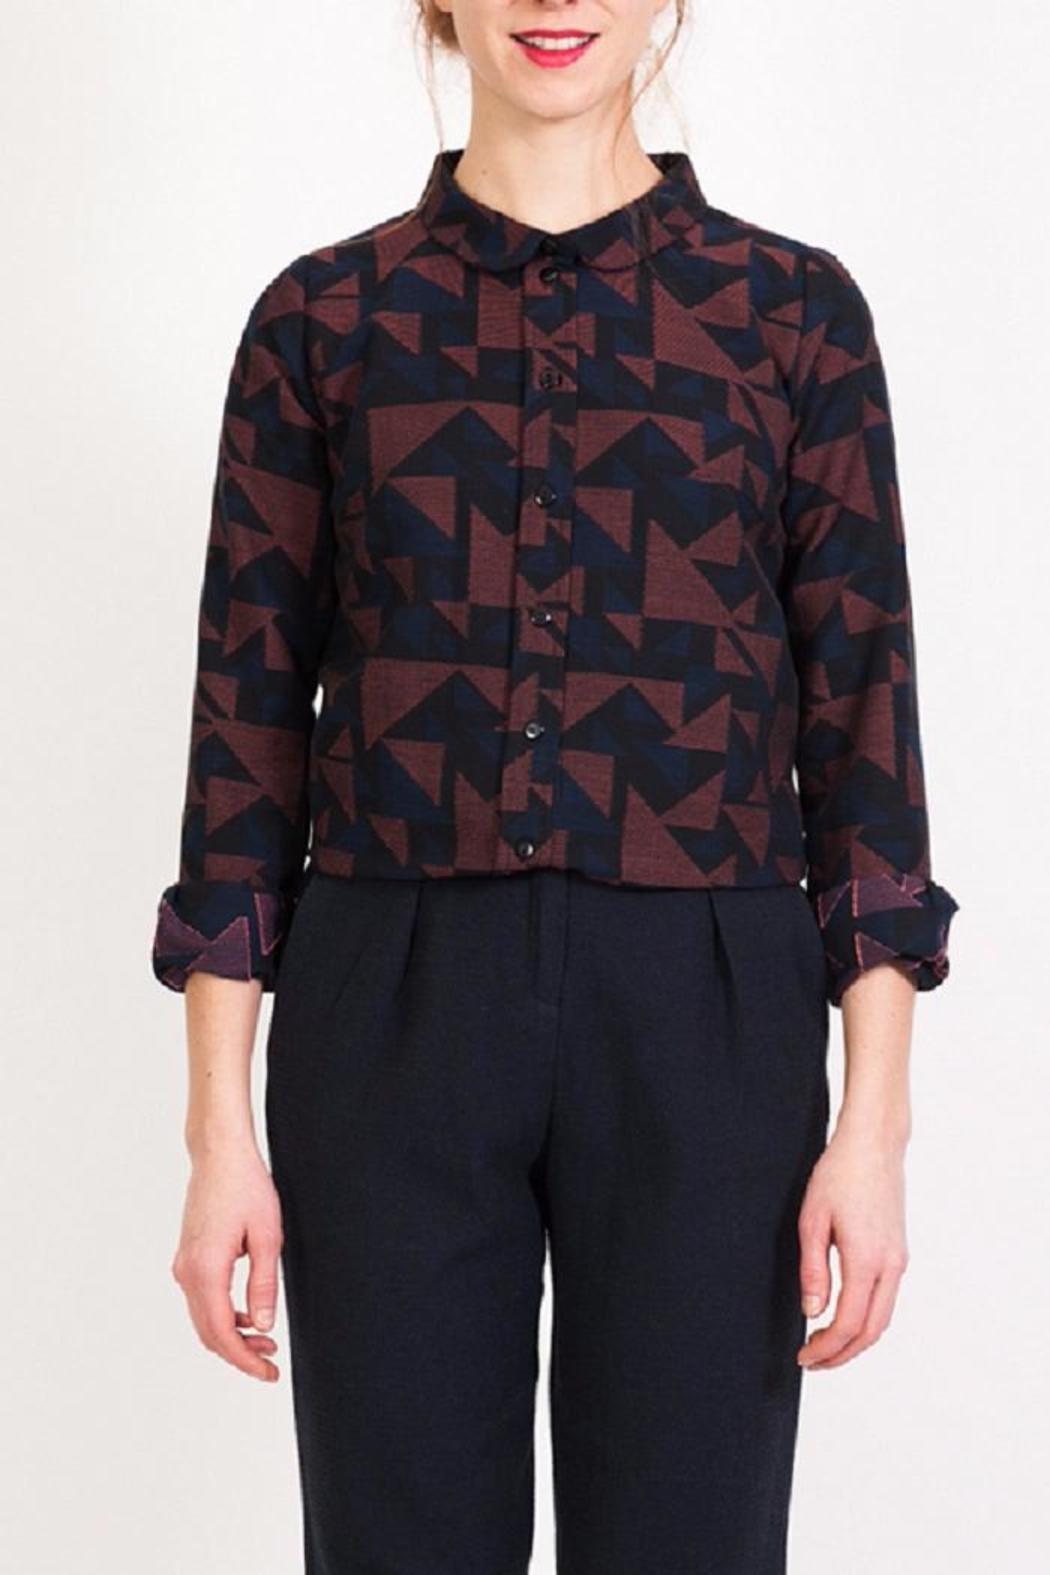 Vanina Escoubet Geometric Design Shirt From Pigalle Shoptiques